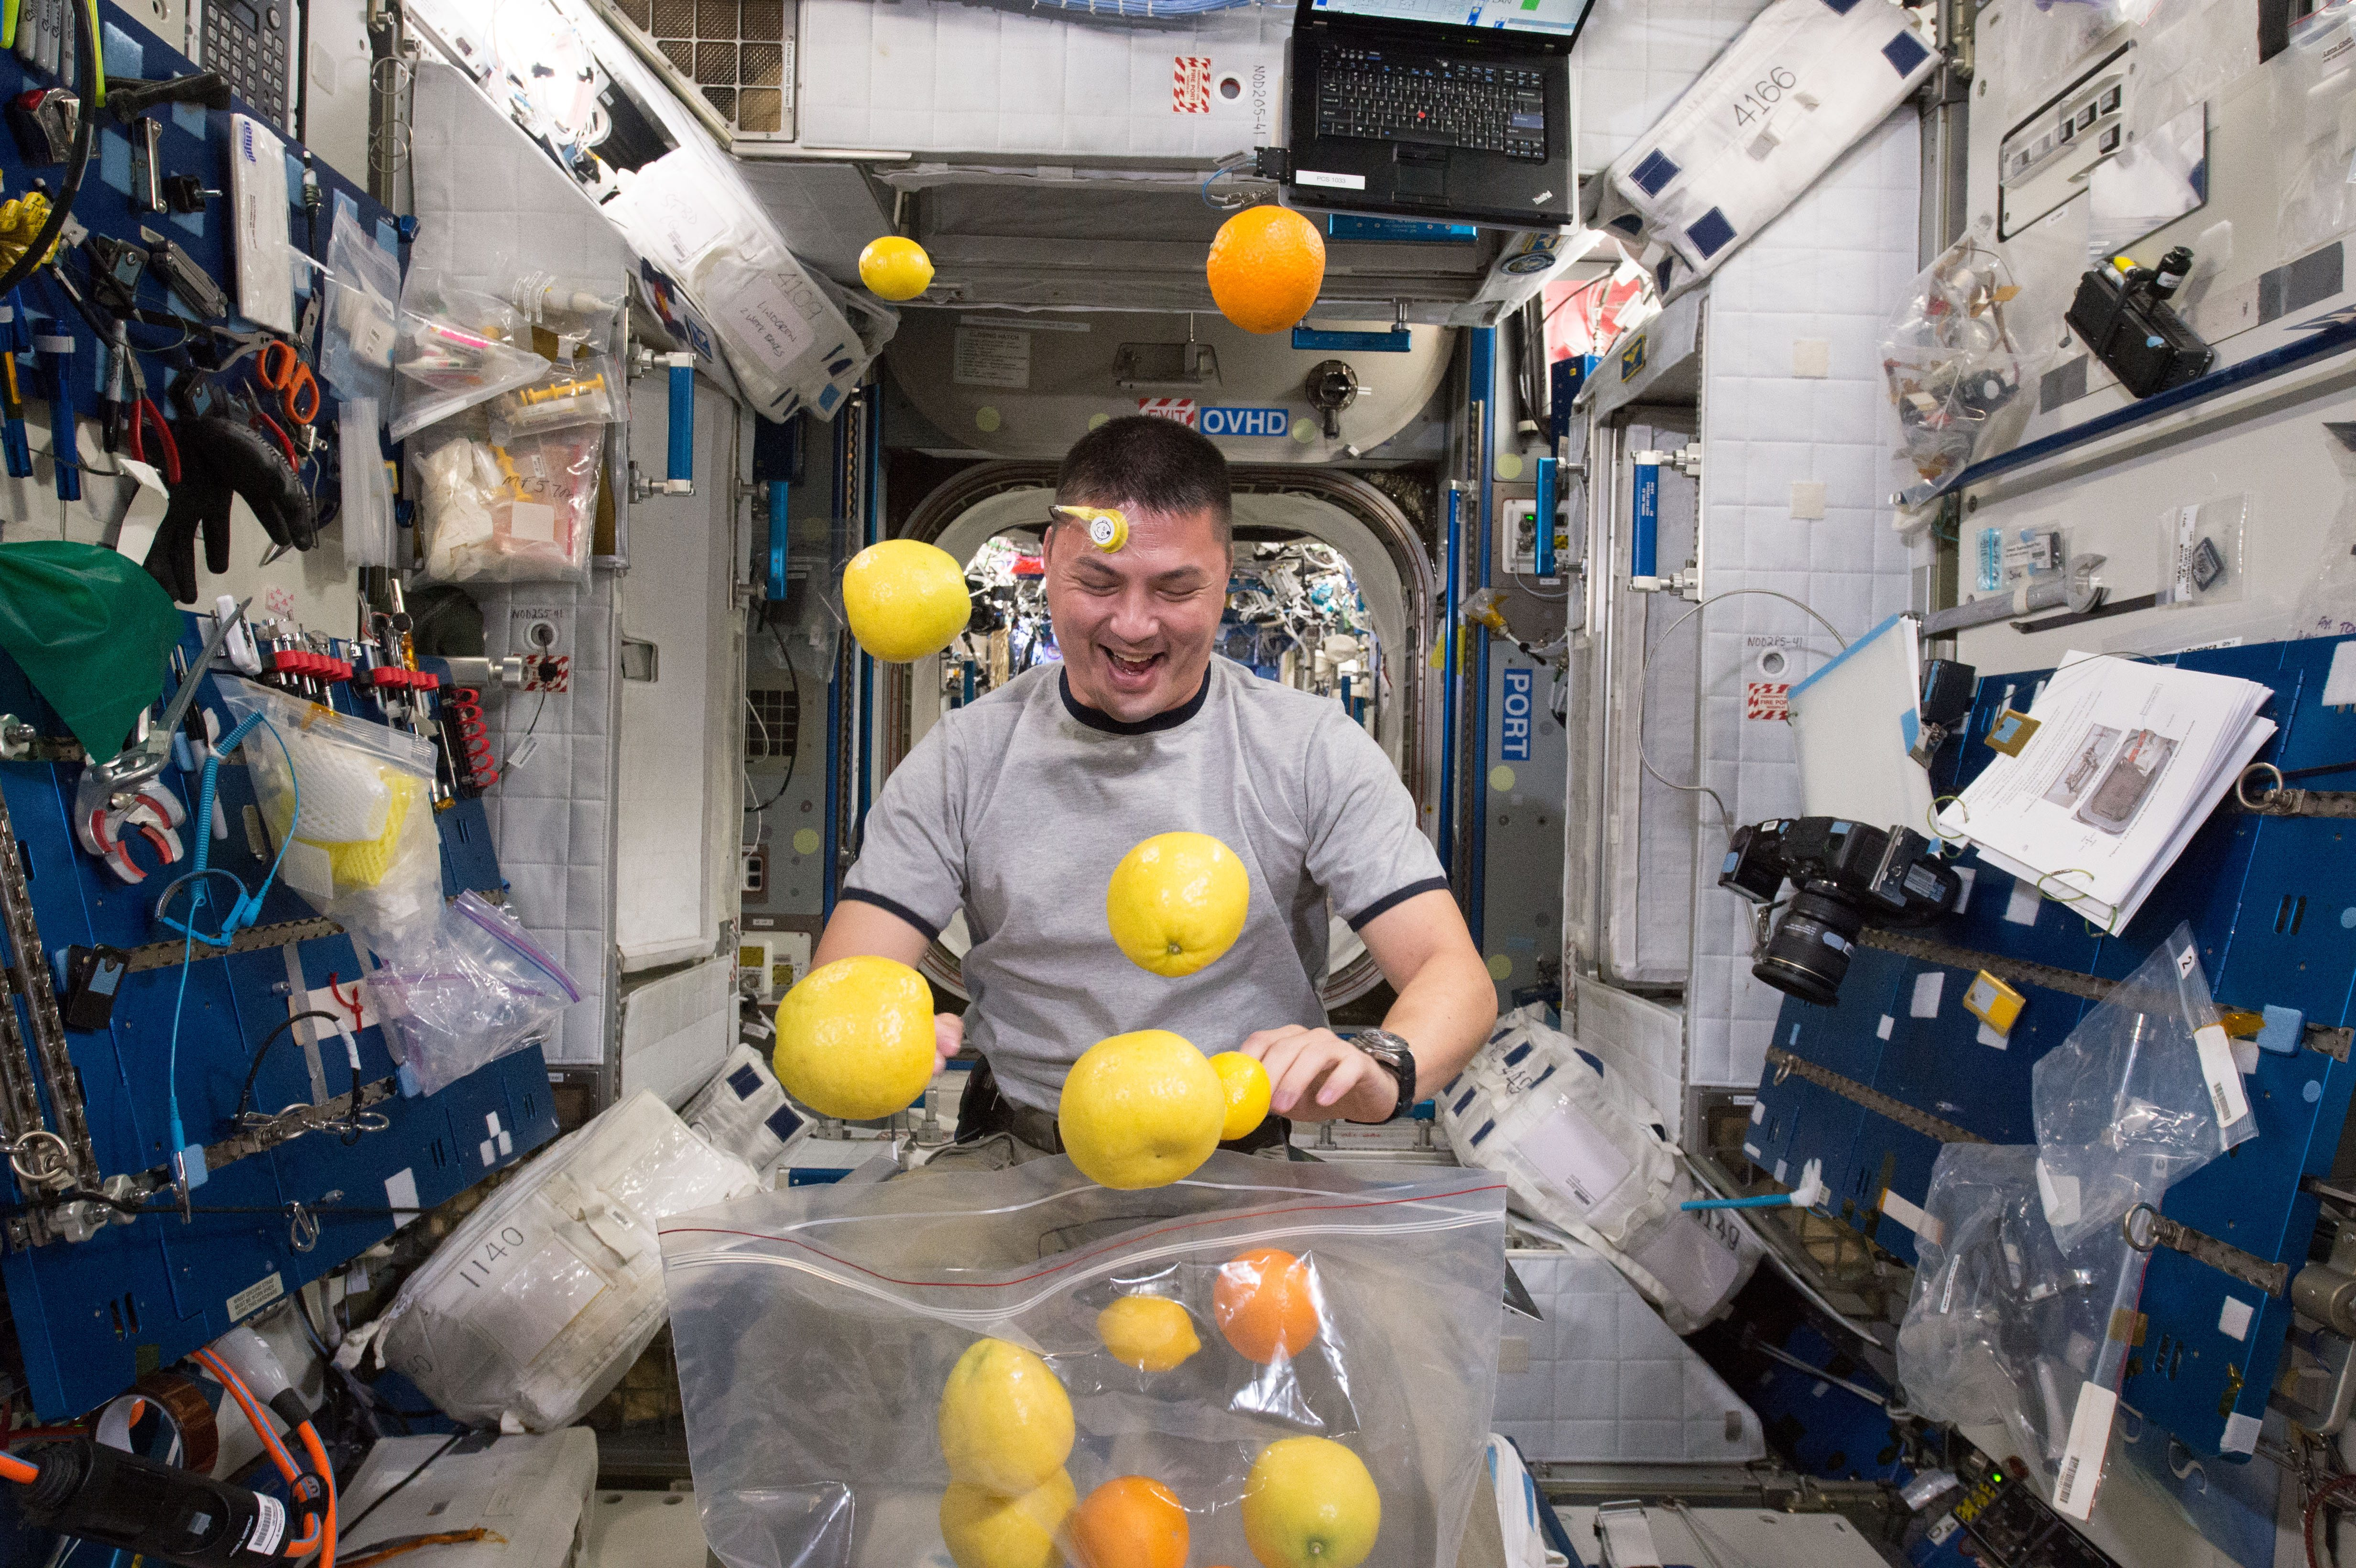 astronaut life after space - photo #11